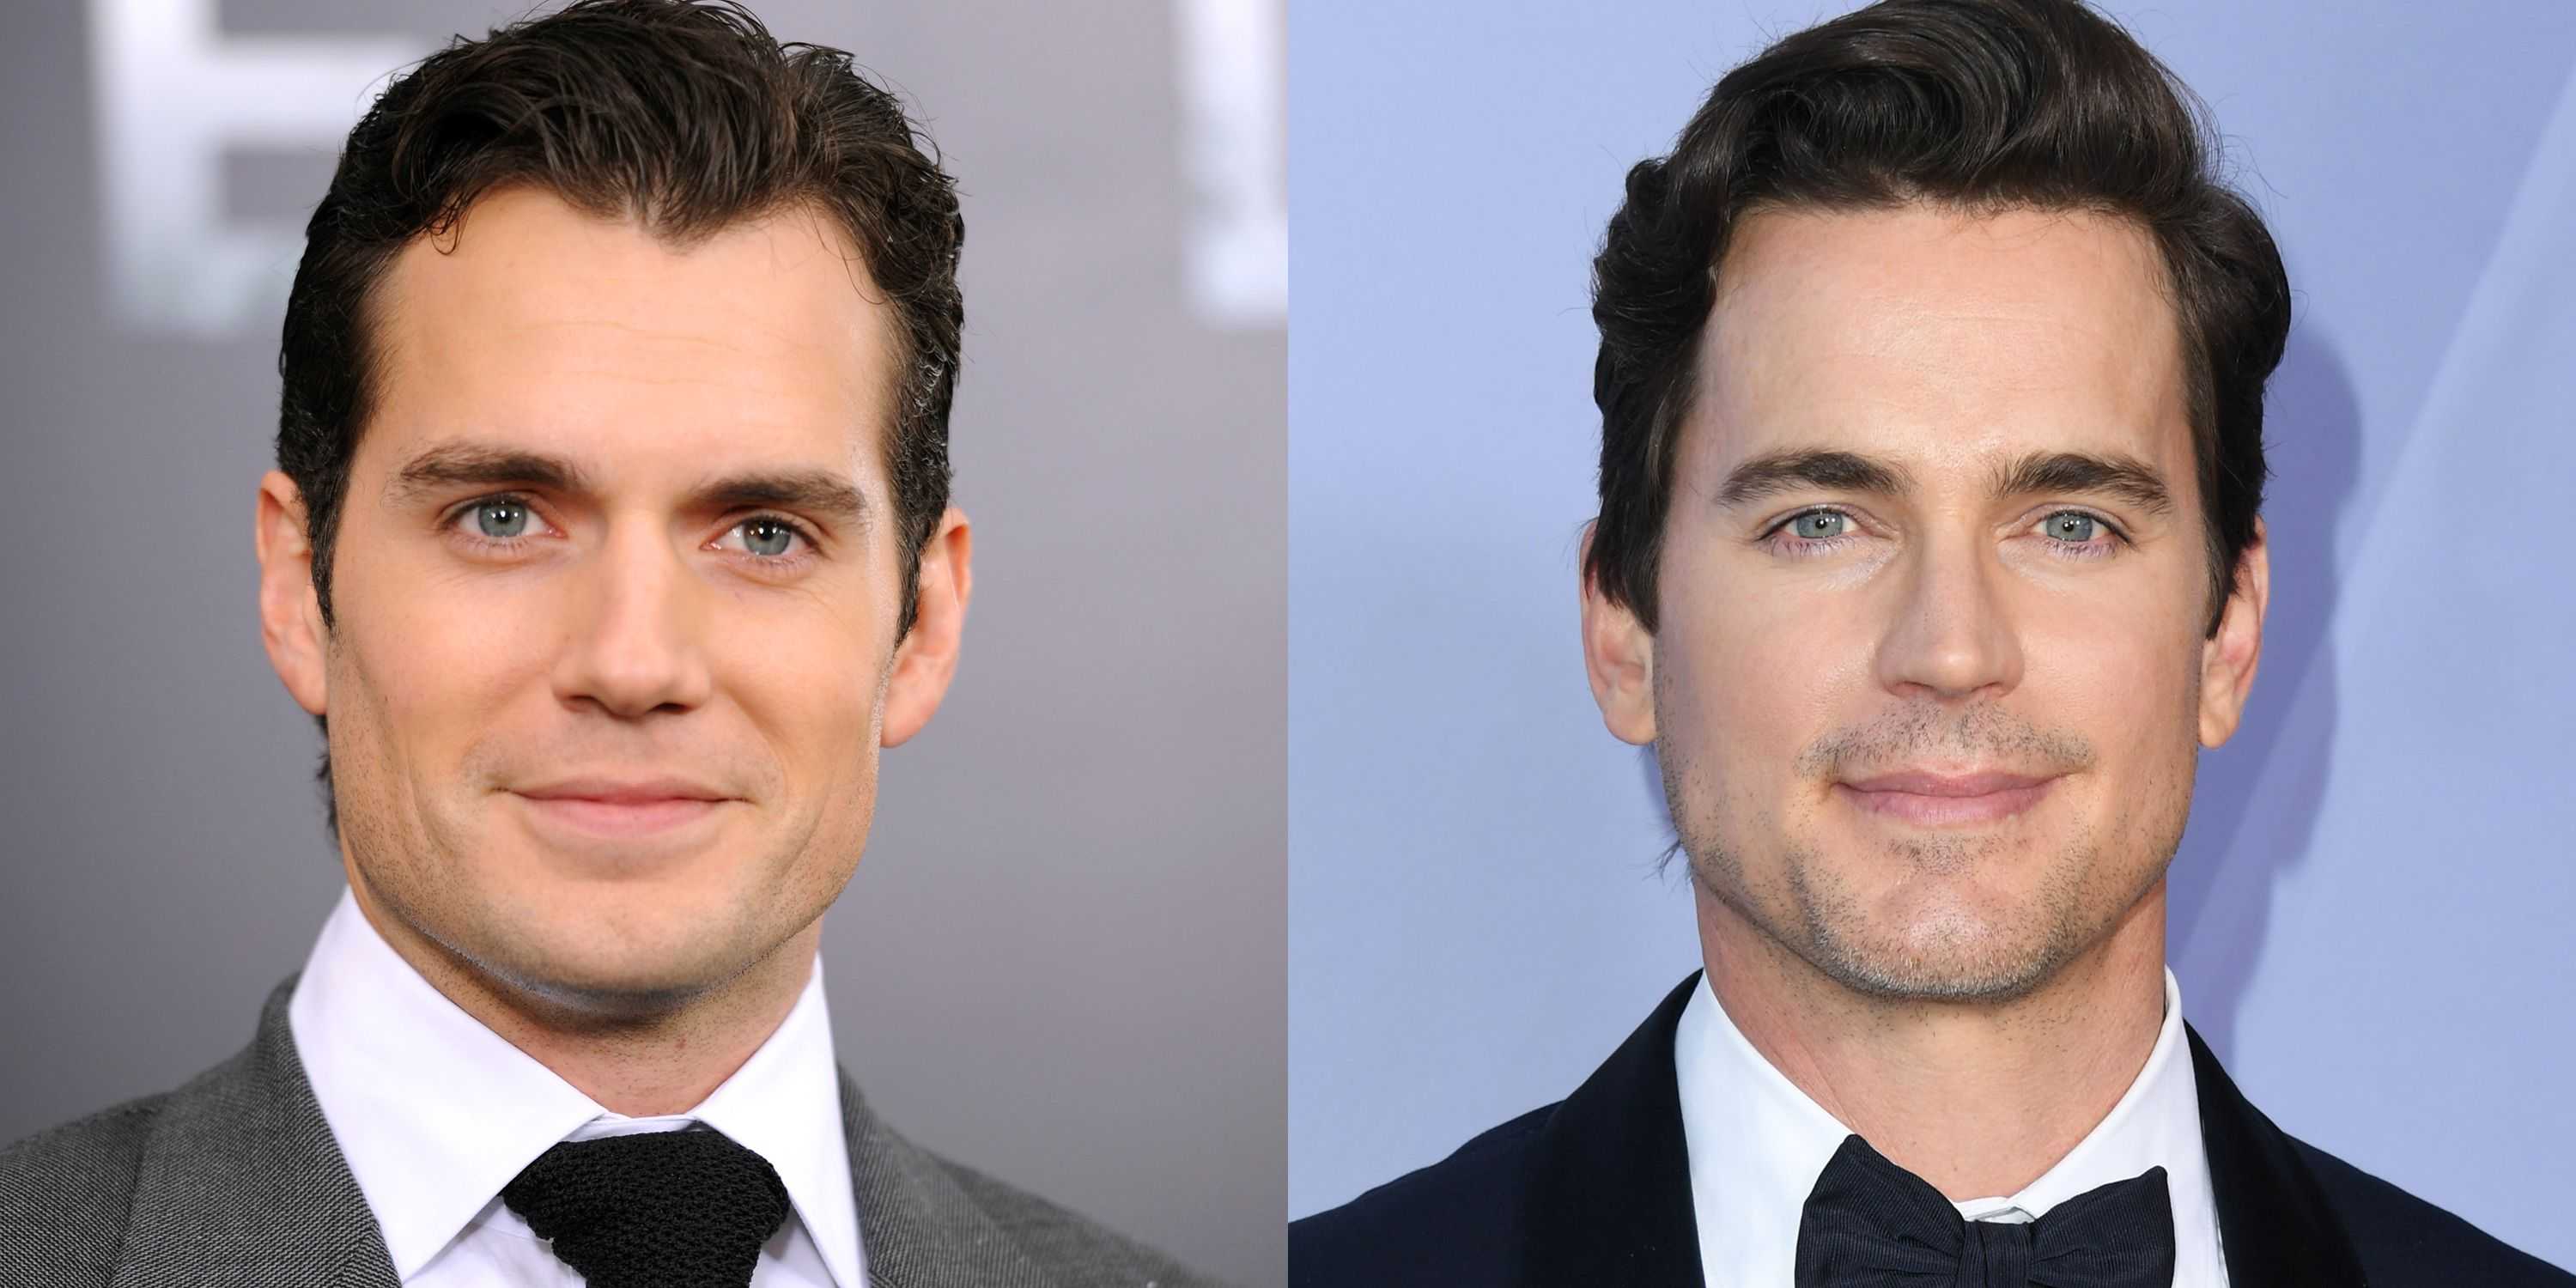 Henry Cavill and Matt Bomer These too heartthrobs are so similar-looking that they often are considered for the same roles. Bomer shared that he'd initially been cast for the iconic role of the Man of Steel until Cavill swept in.